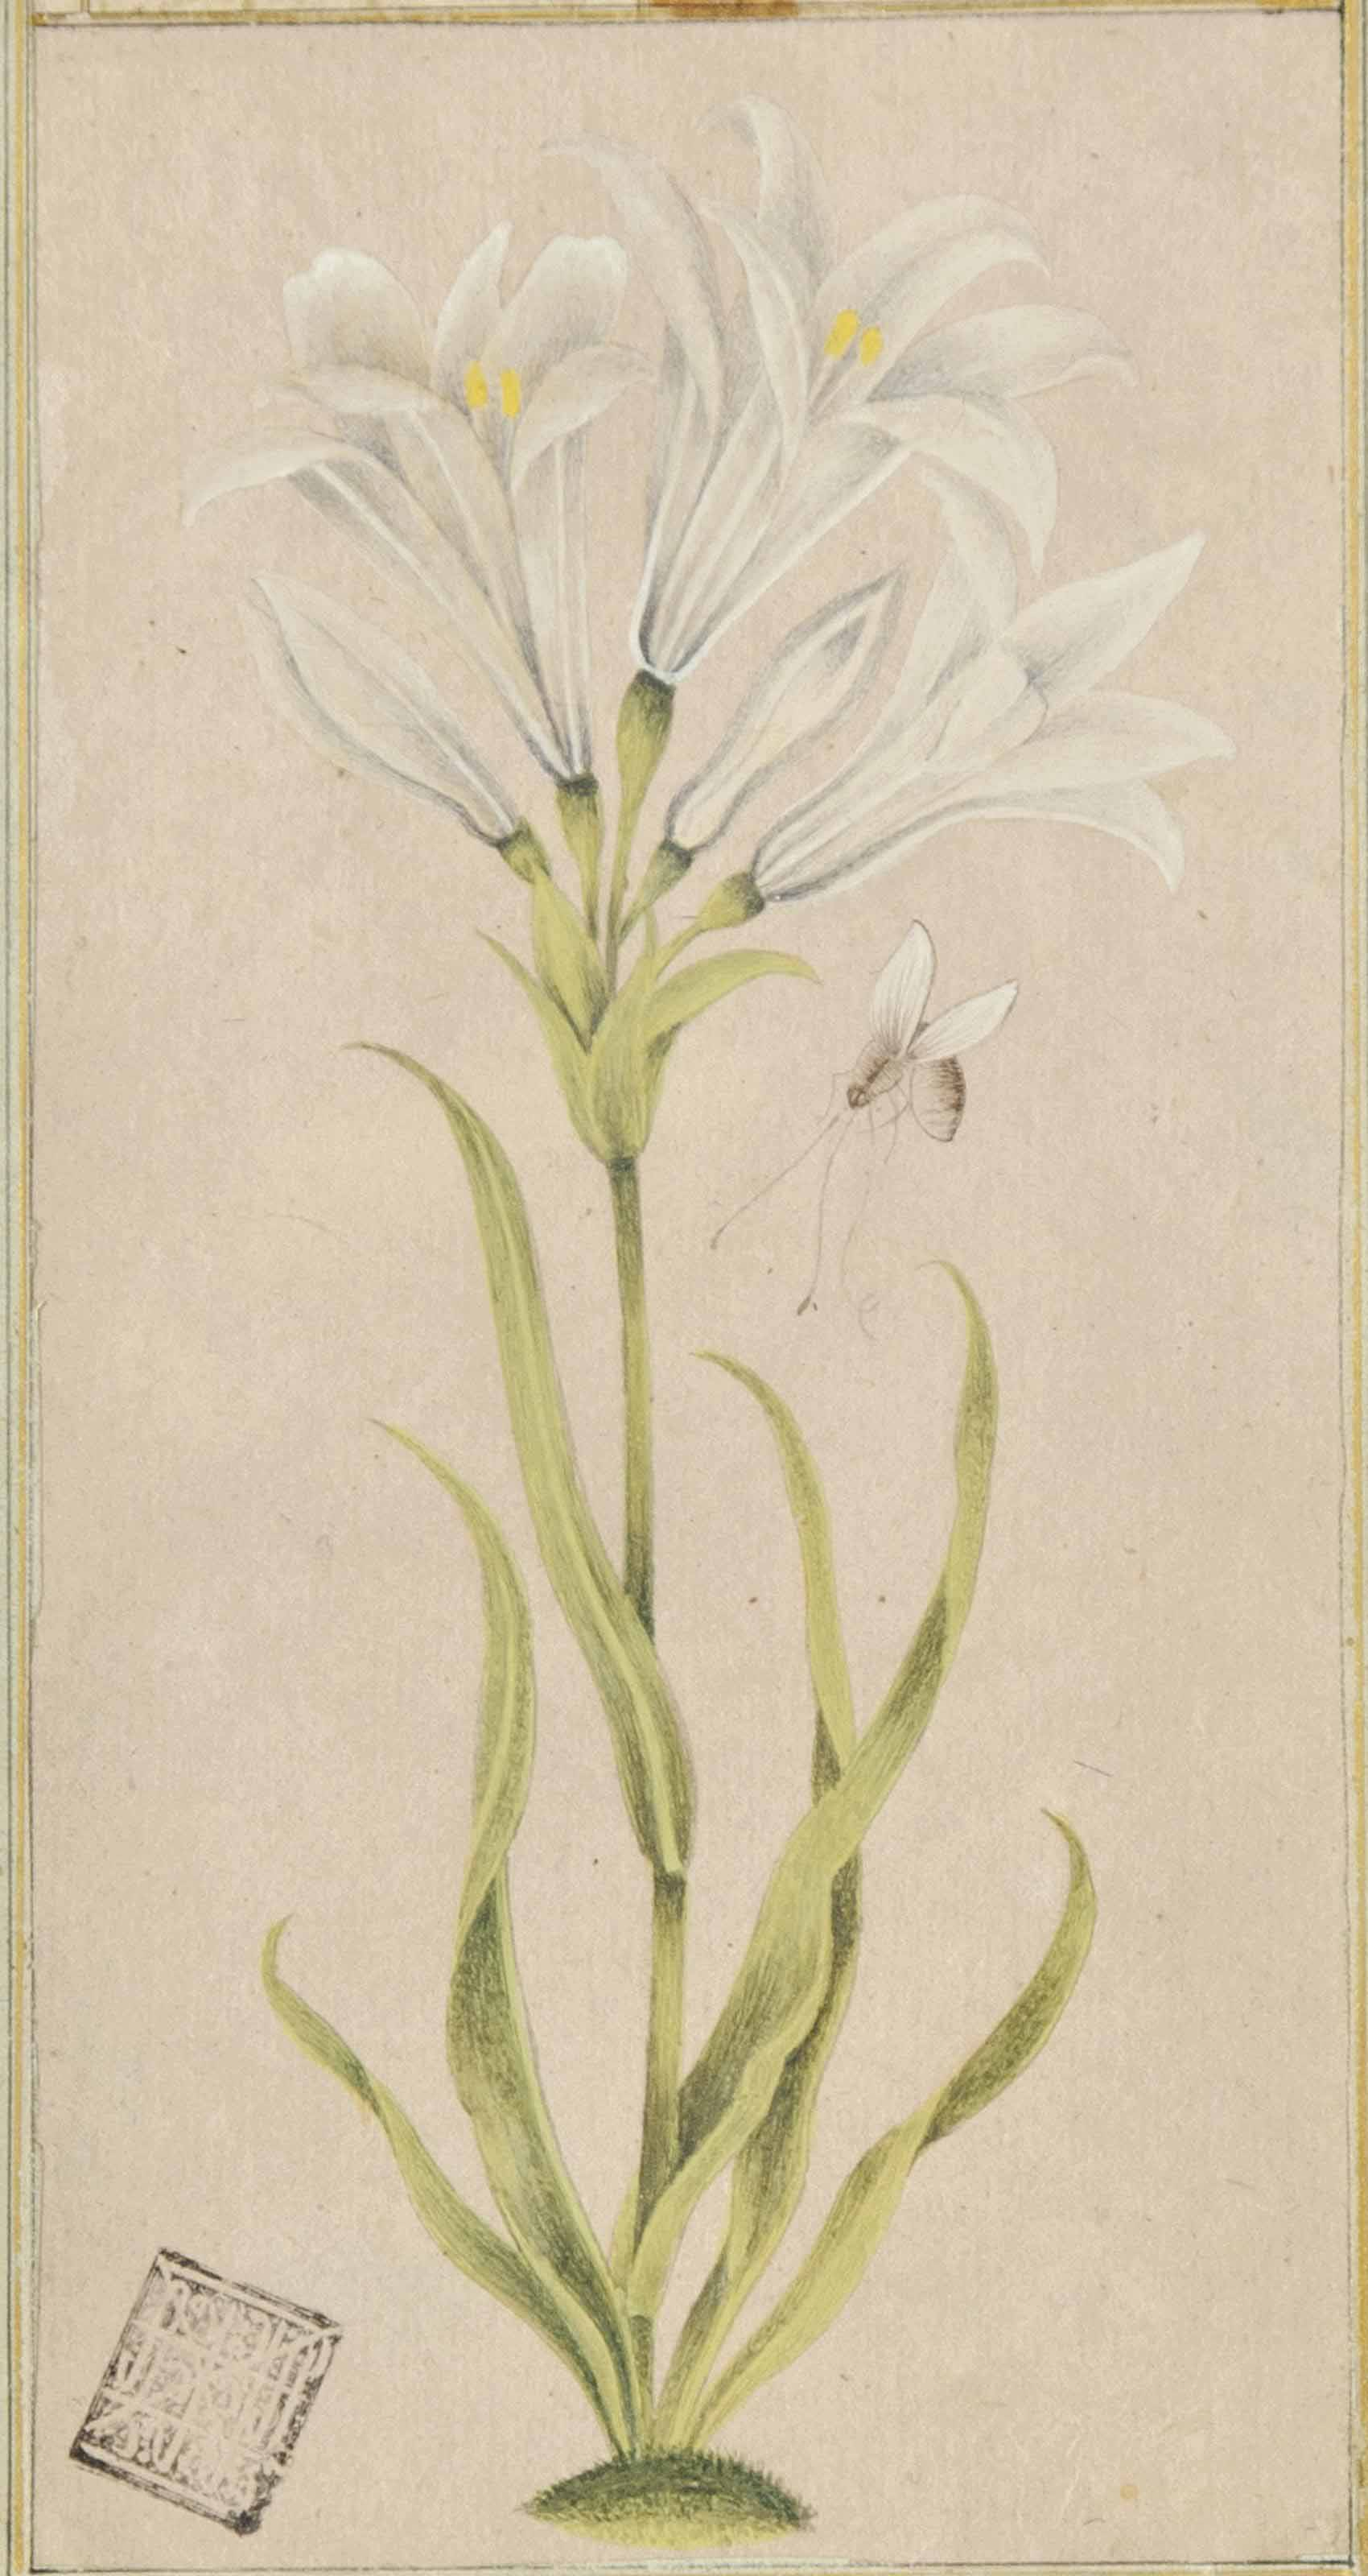 A BOTANICAL PAINTING OF A LILY